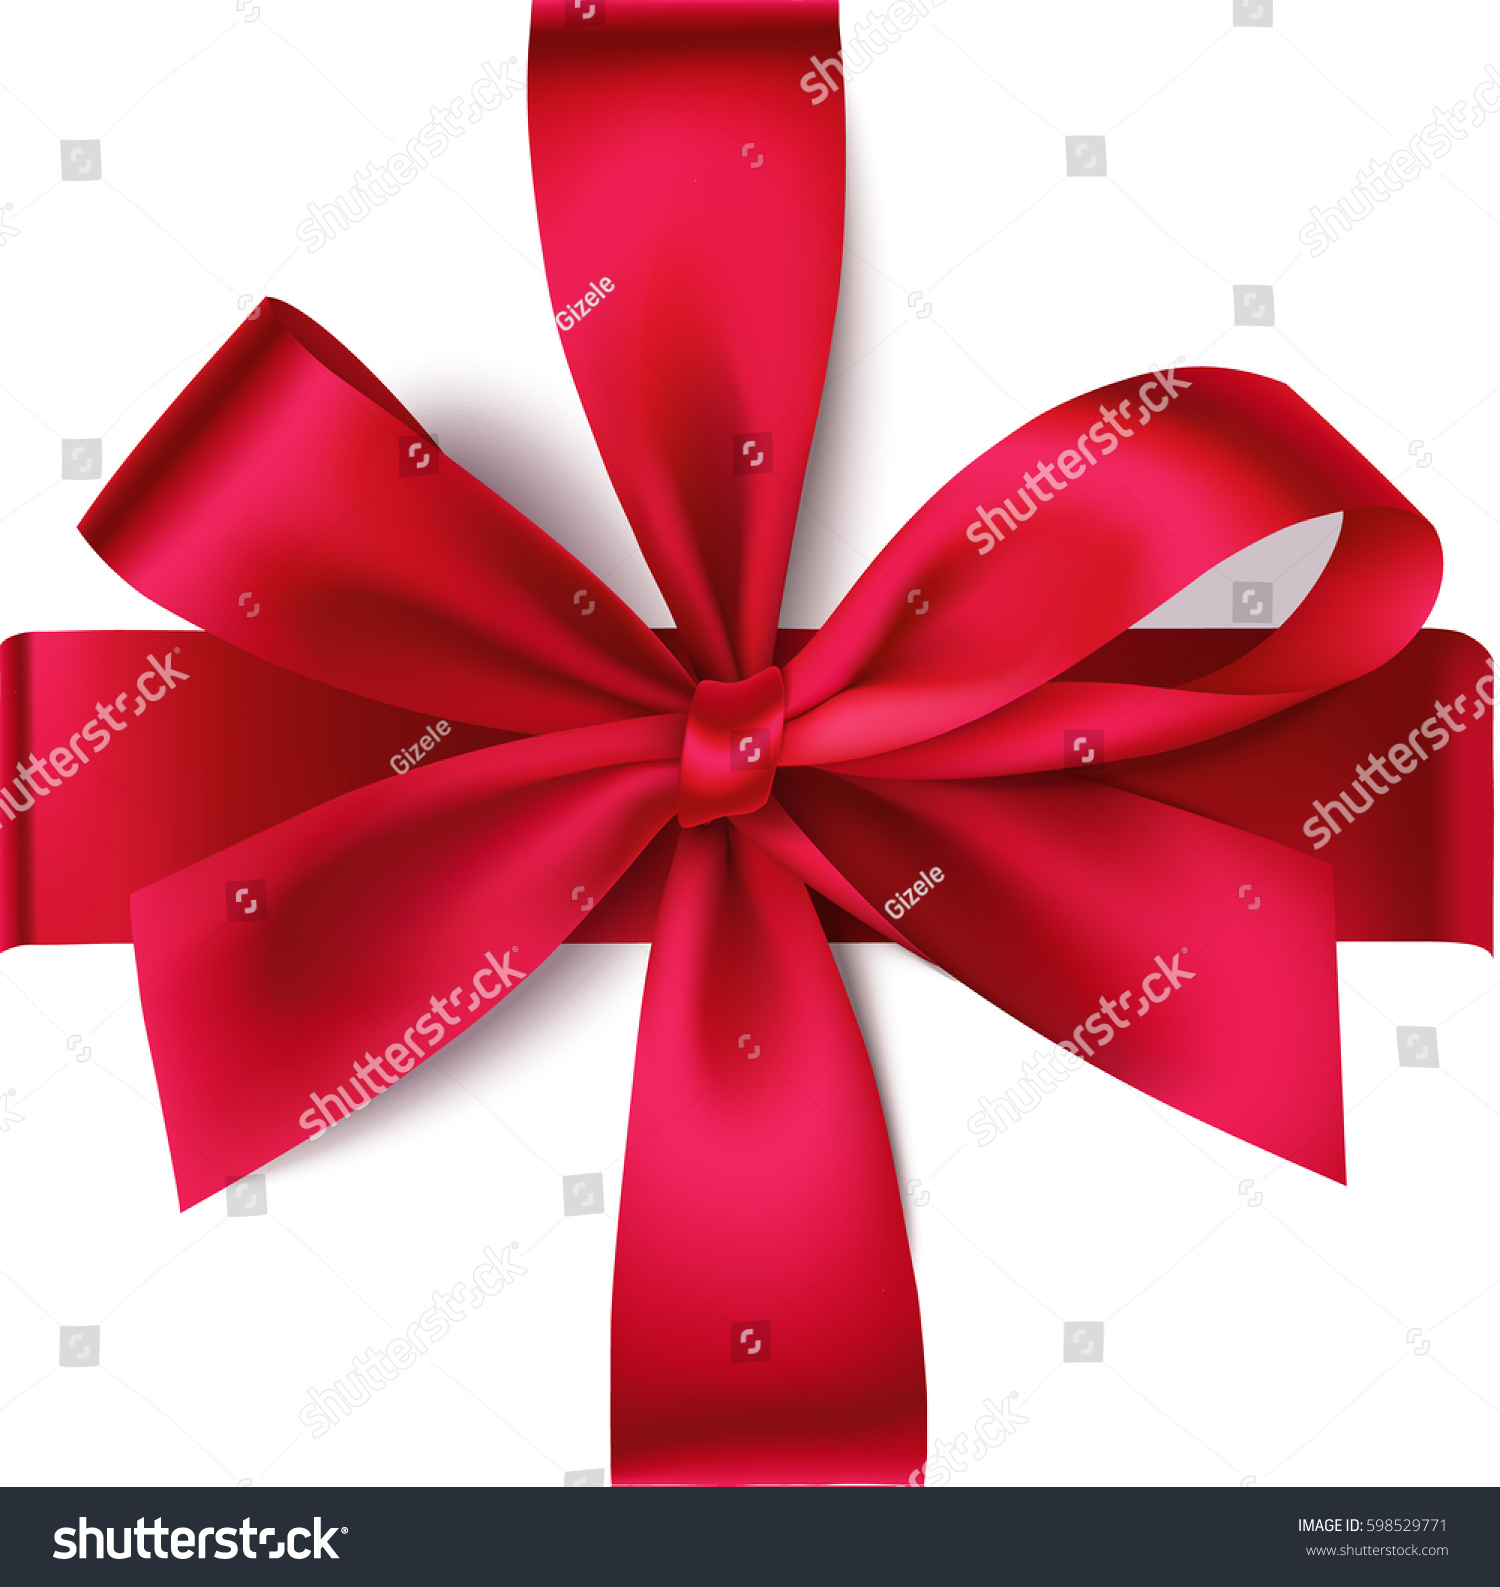 Decorative Red Bow Horizontal Vertical Ribbon Stock Vector 598529771 ...